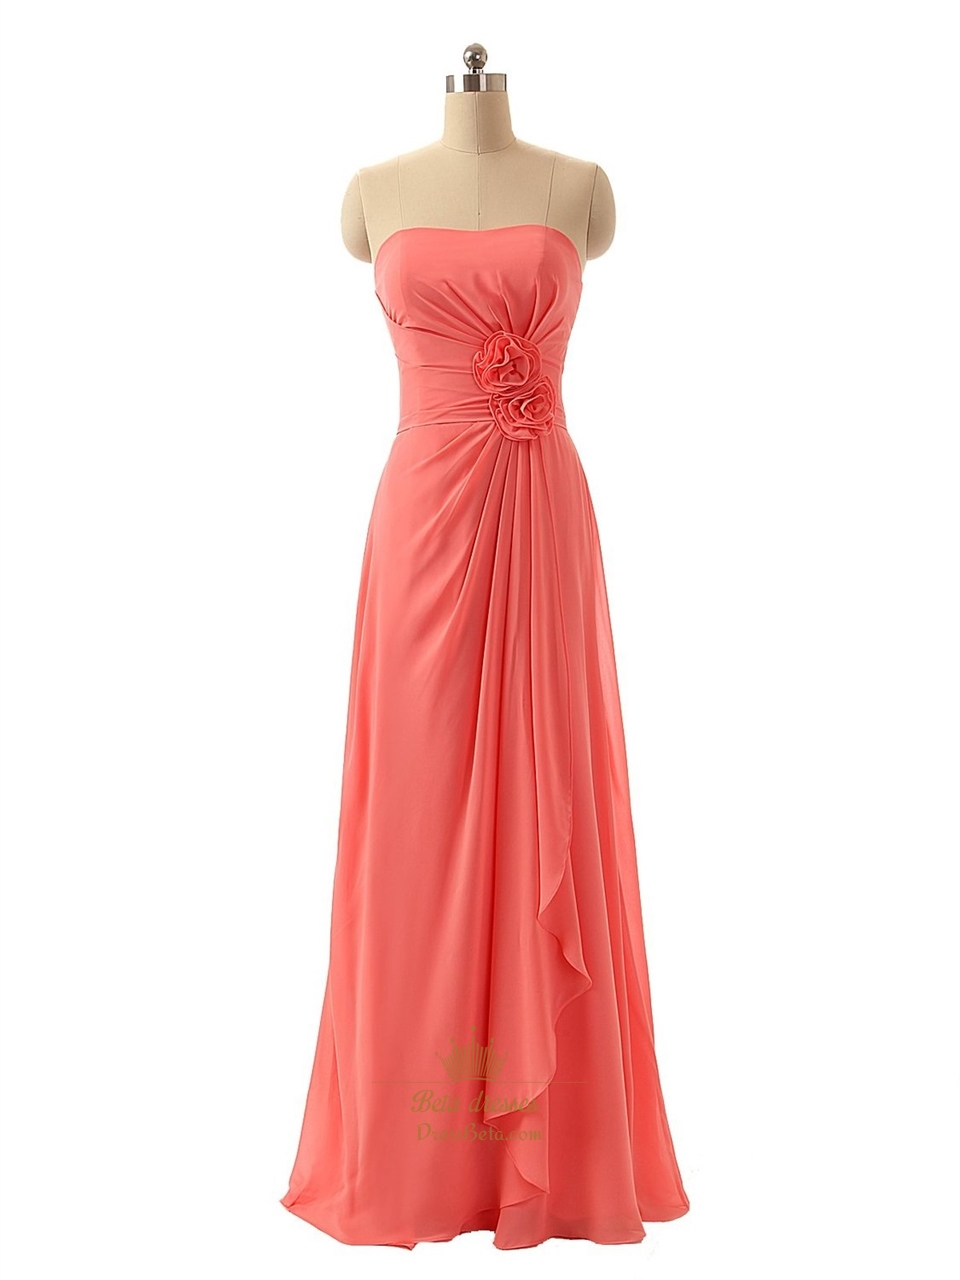 f321e158aa Coral Strapless Crinkle Chiffon Ruched Bodice Evening Dress With Front  Cascade SKU -P111